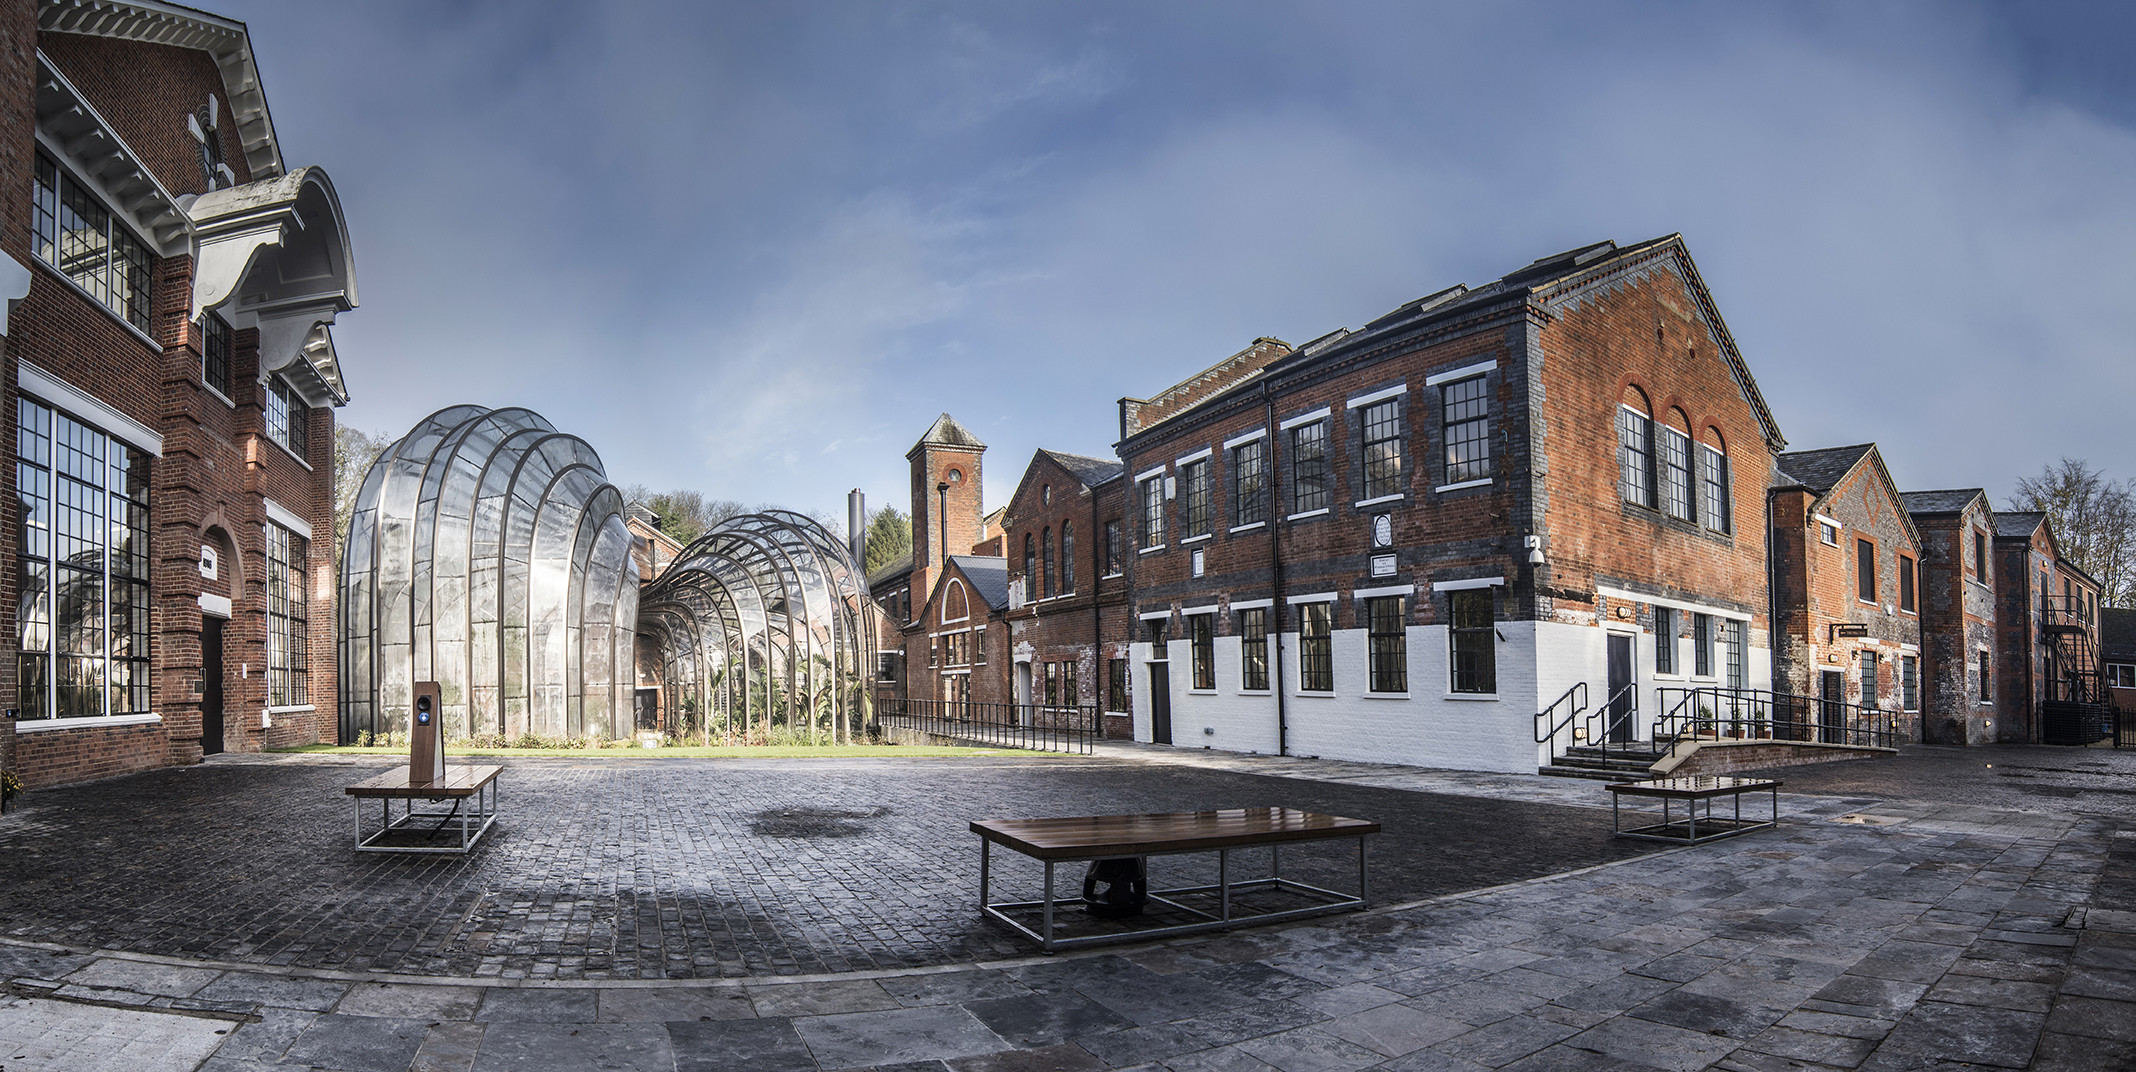 Bombay Sapphire Gin & Winchester Full Day Tour